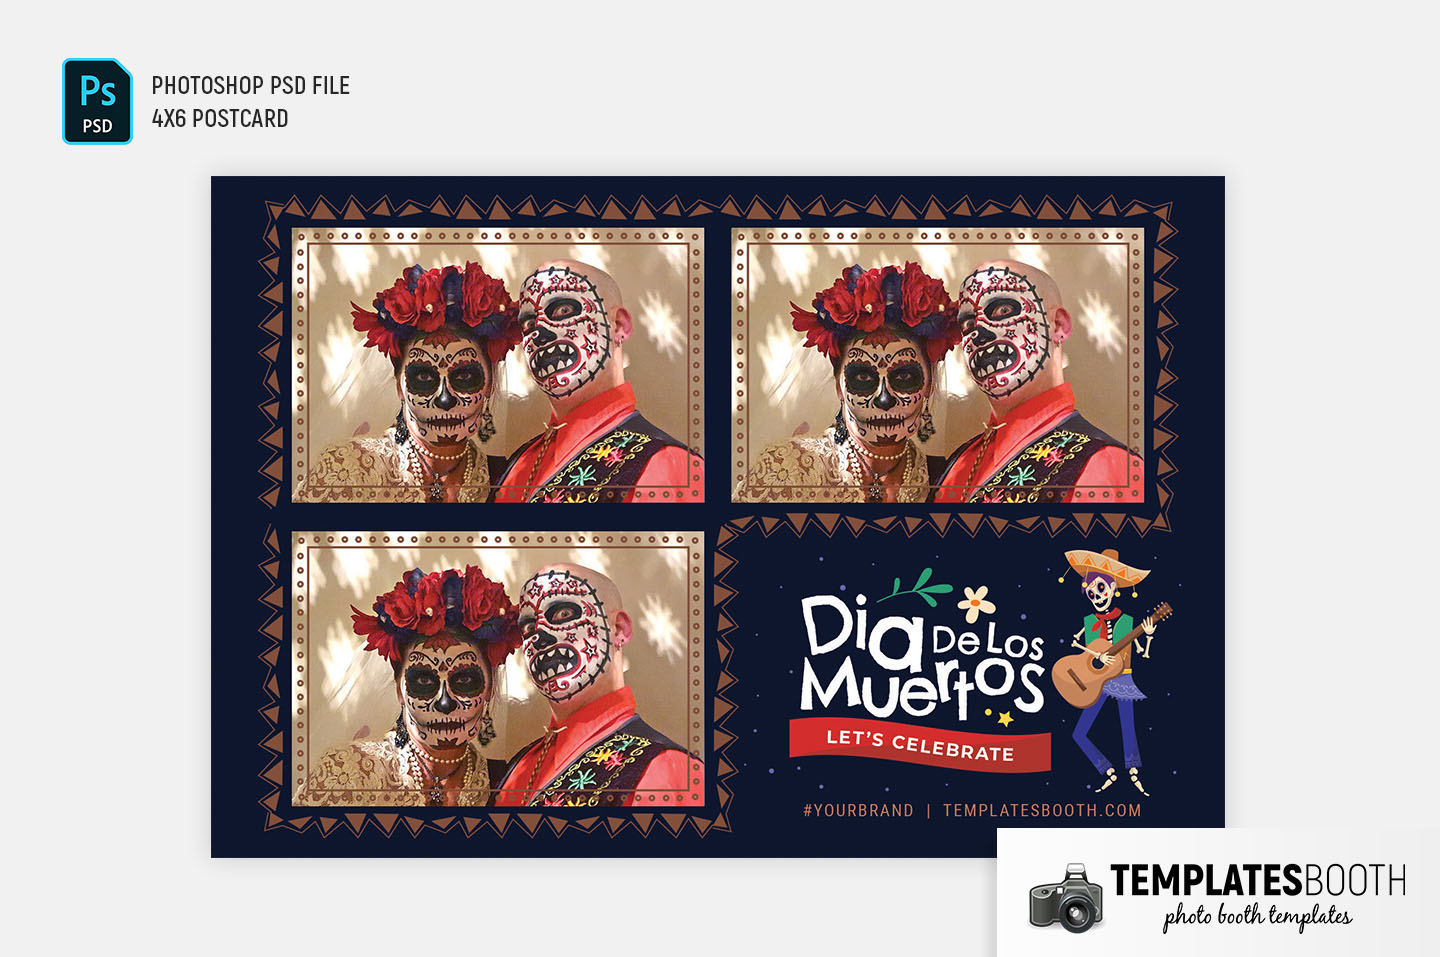 Day of The Dead Photo Booth Template (4x6 postcard)